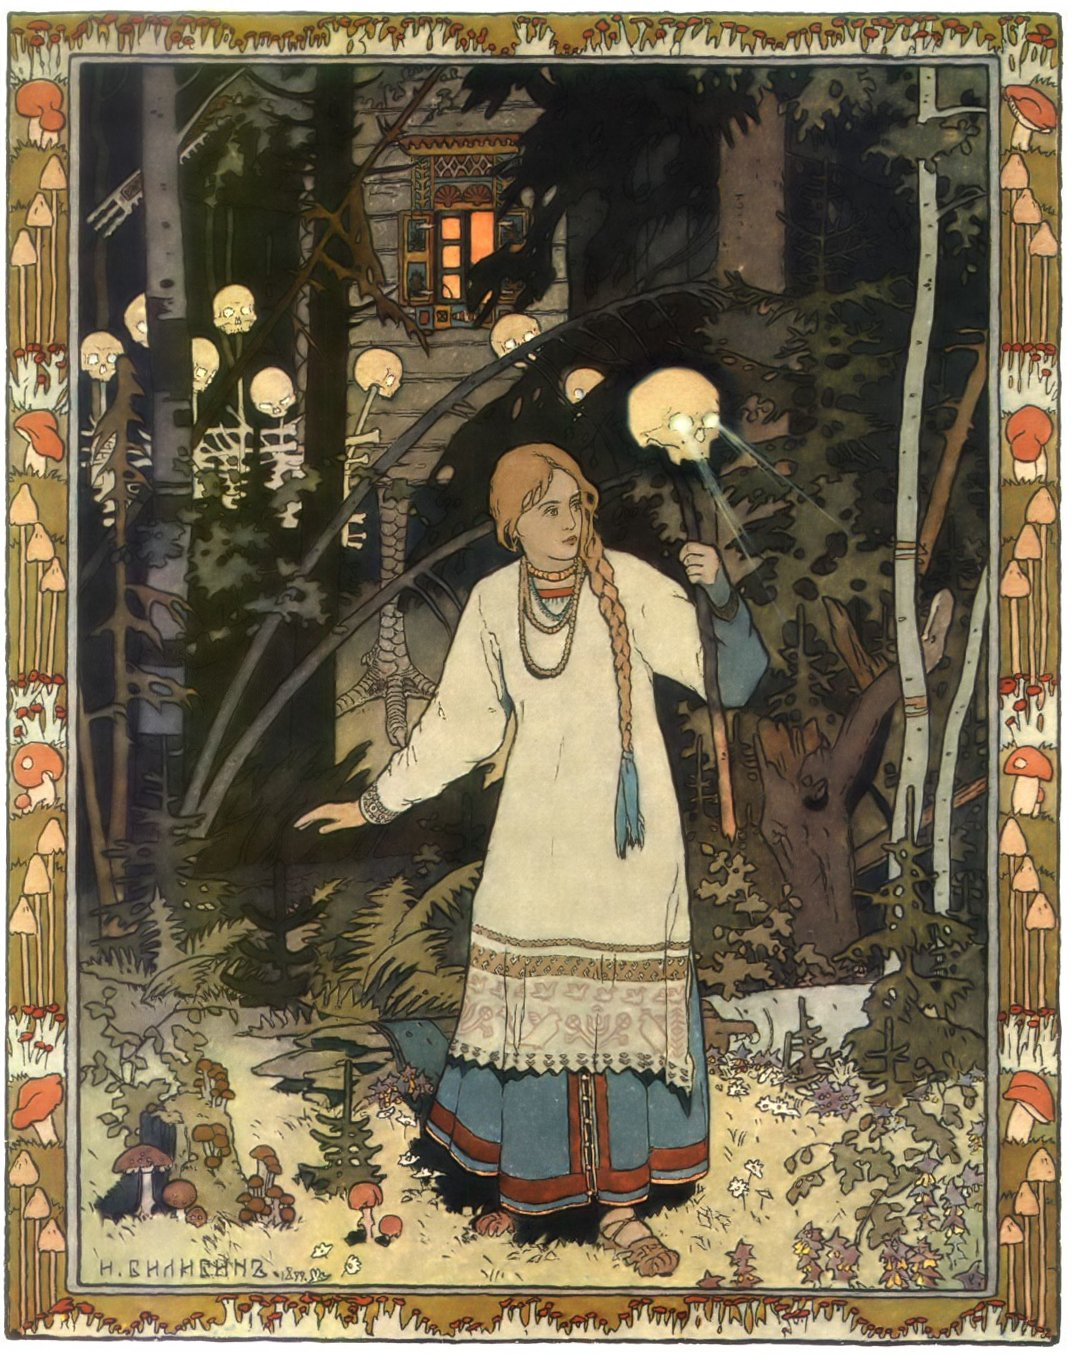 File:Vasilisa.jpg - Wikipedia, the free encyclopedia